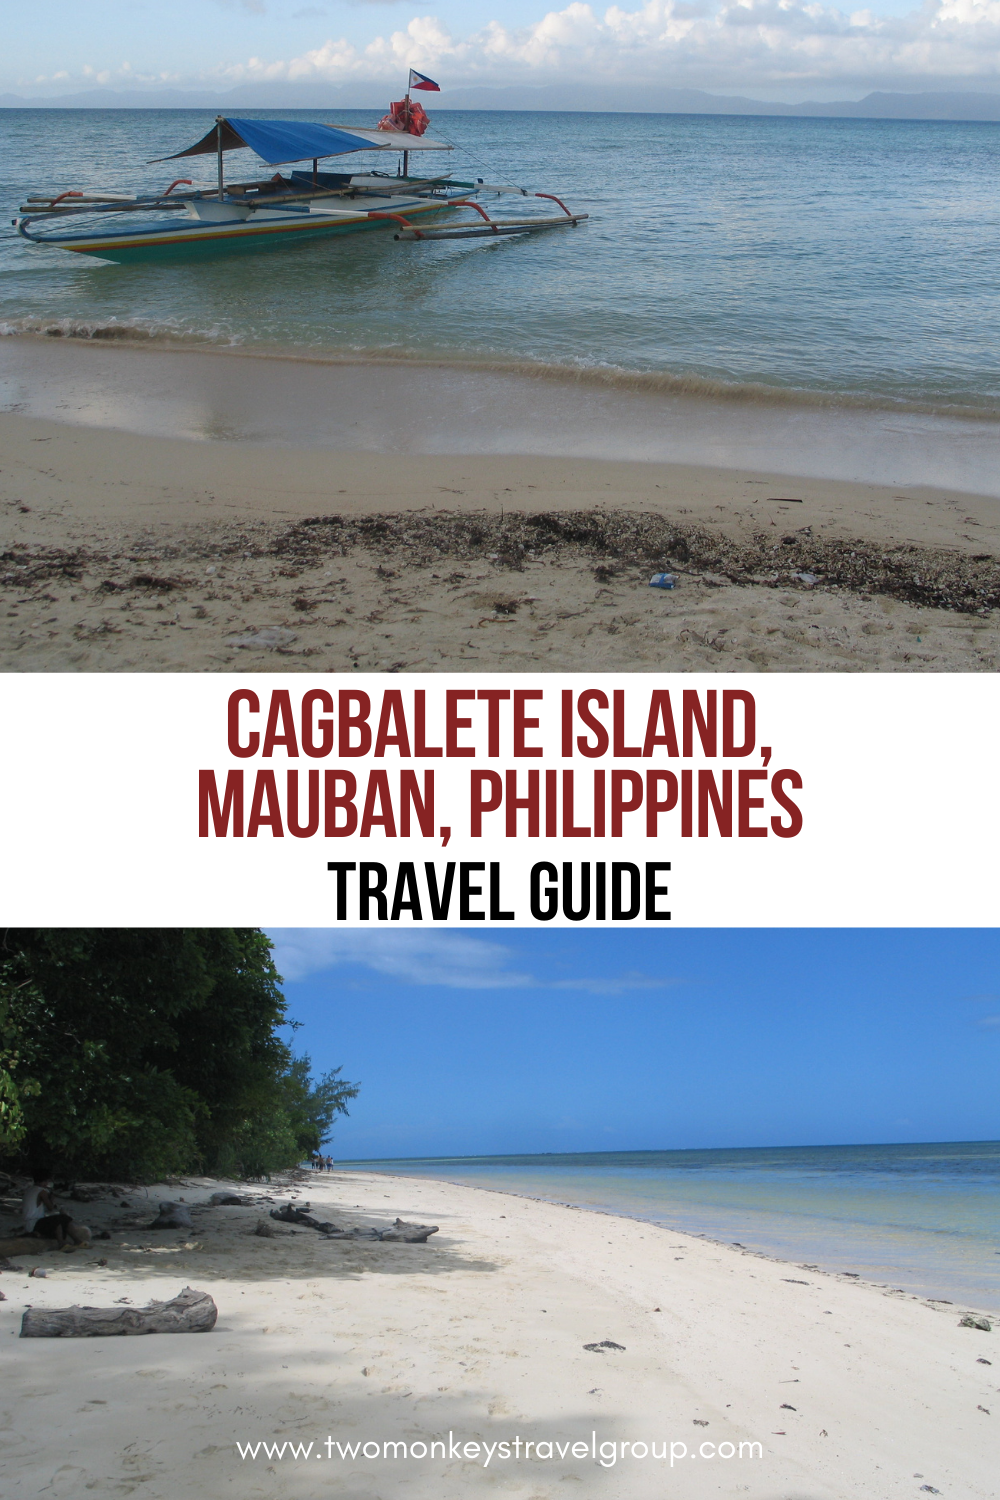 Travel Guide to Cagbalete Island, Mauban, Philippines with DIY Itinerary